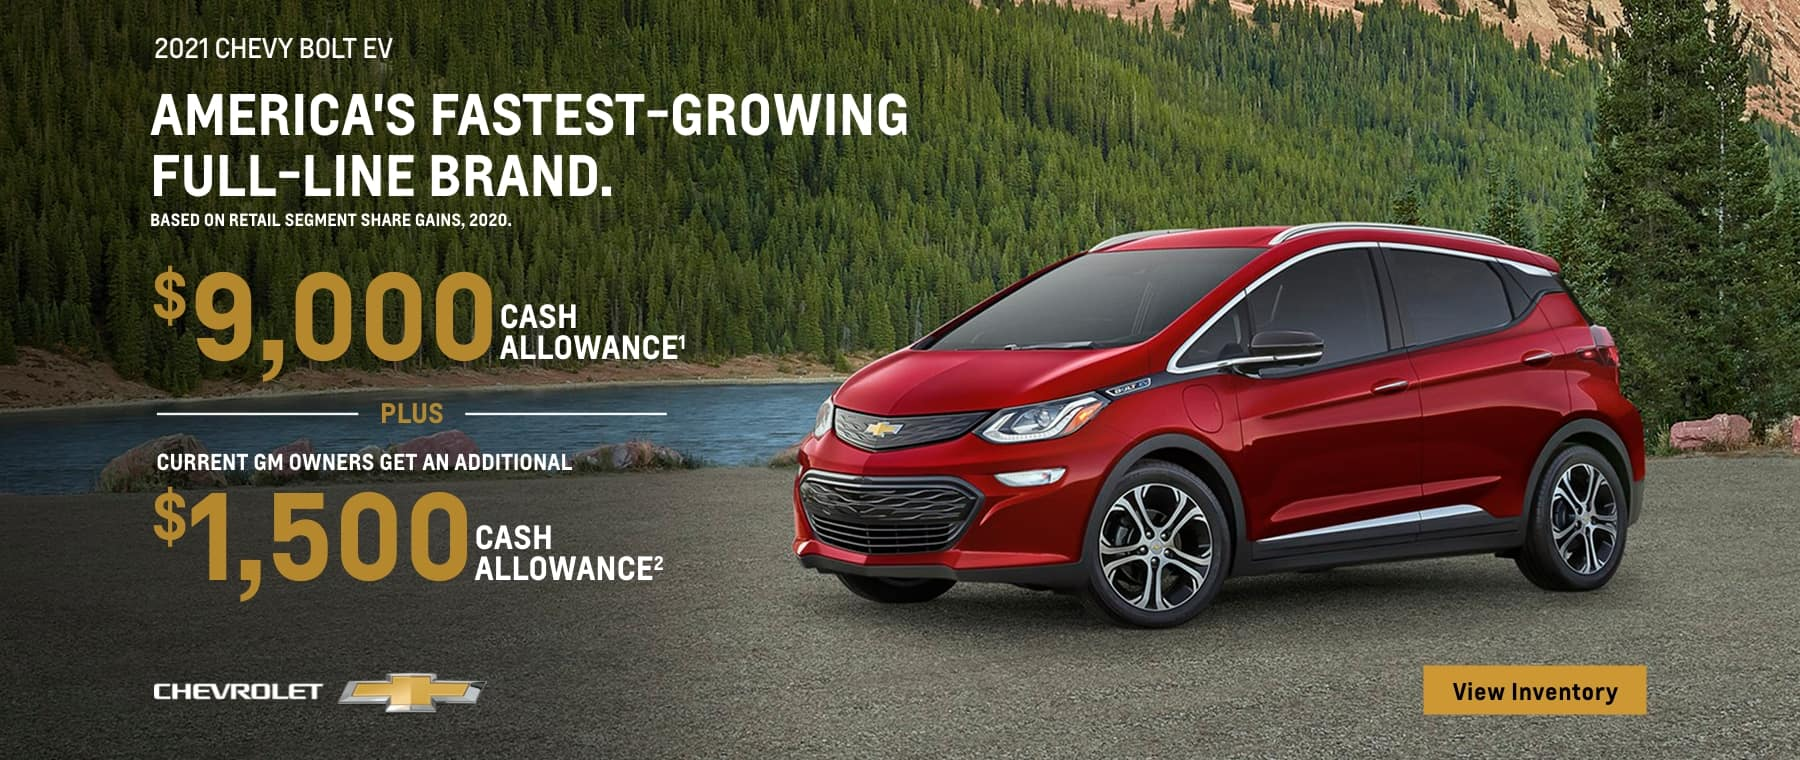 2021 chevy bolt ev current gm owners get an additional chevrolet cash allowance : cash allowance2 c view inventory